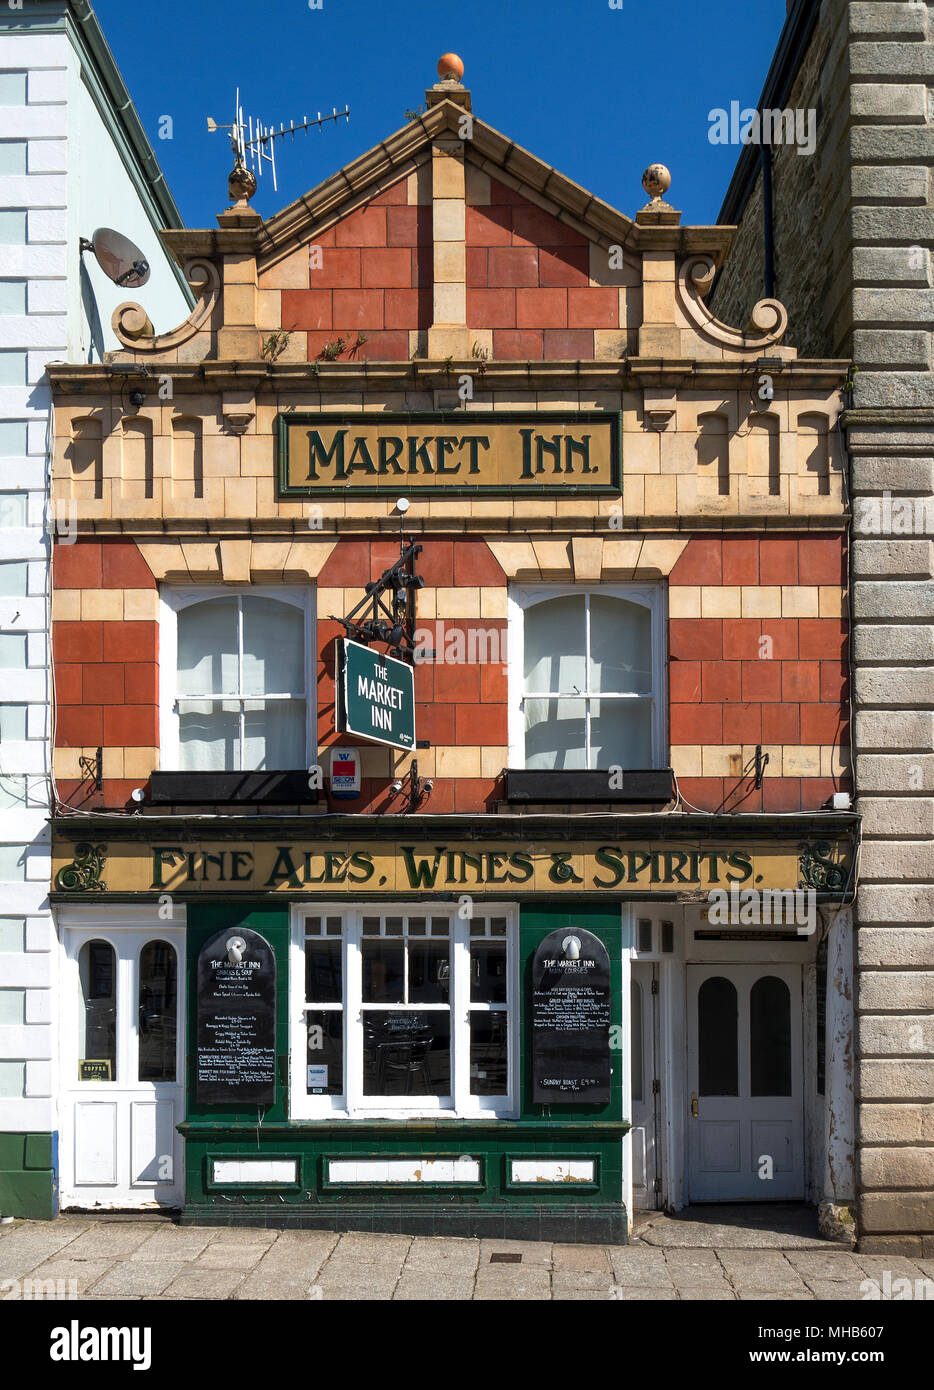 the market inn traditional english pub in truro, cornwall, england, britain, uk. - Stock Image